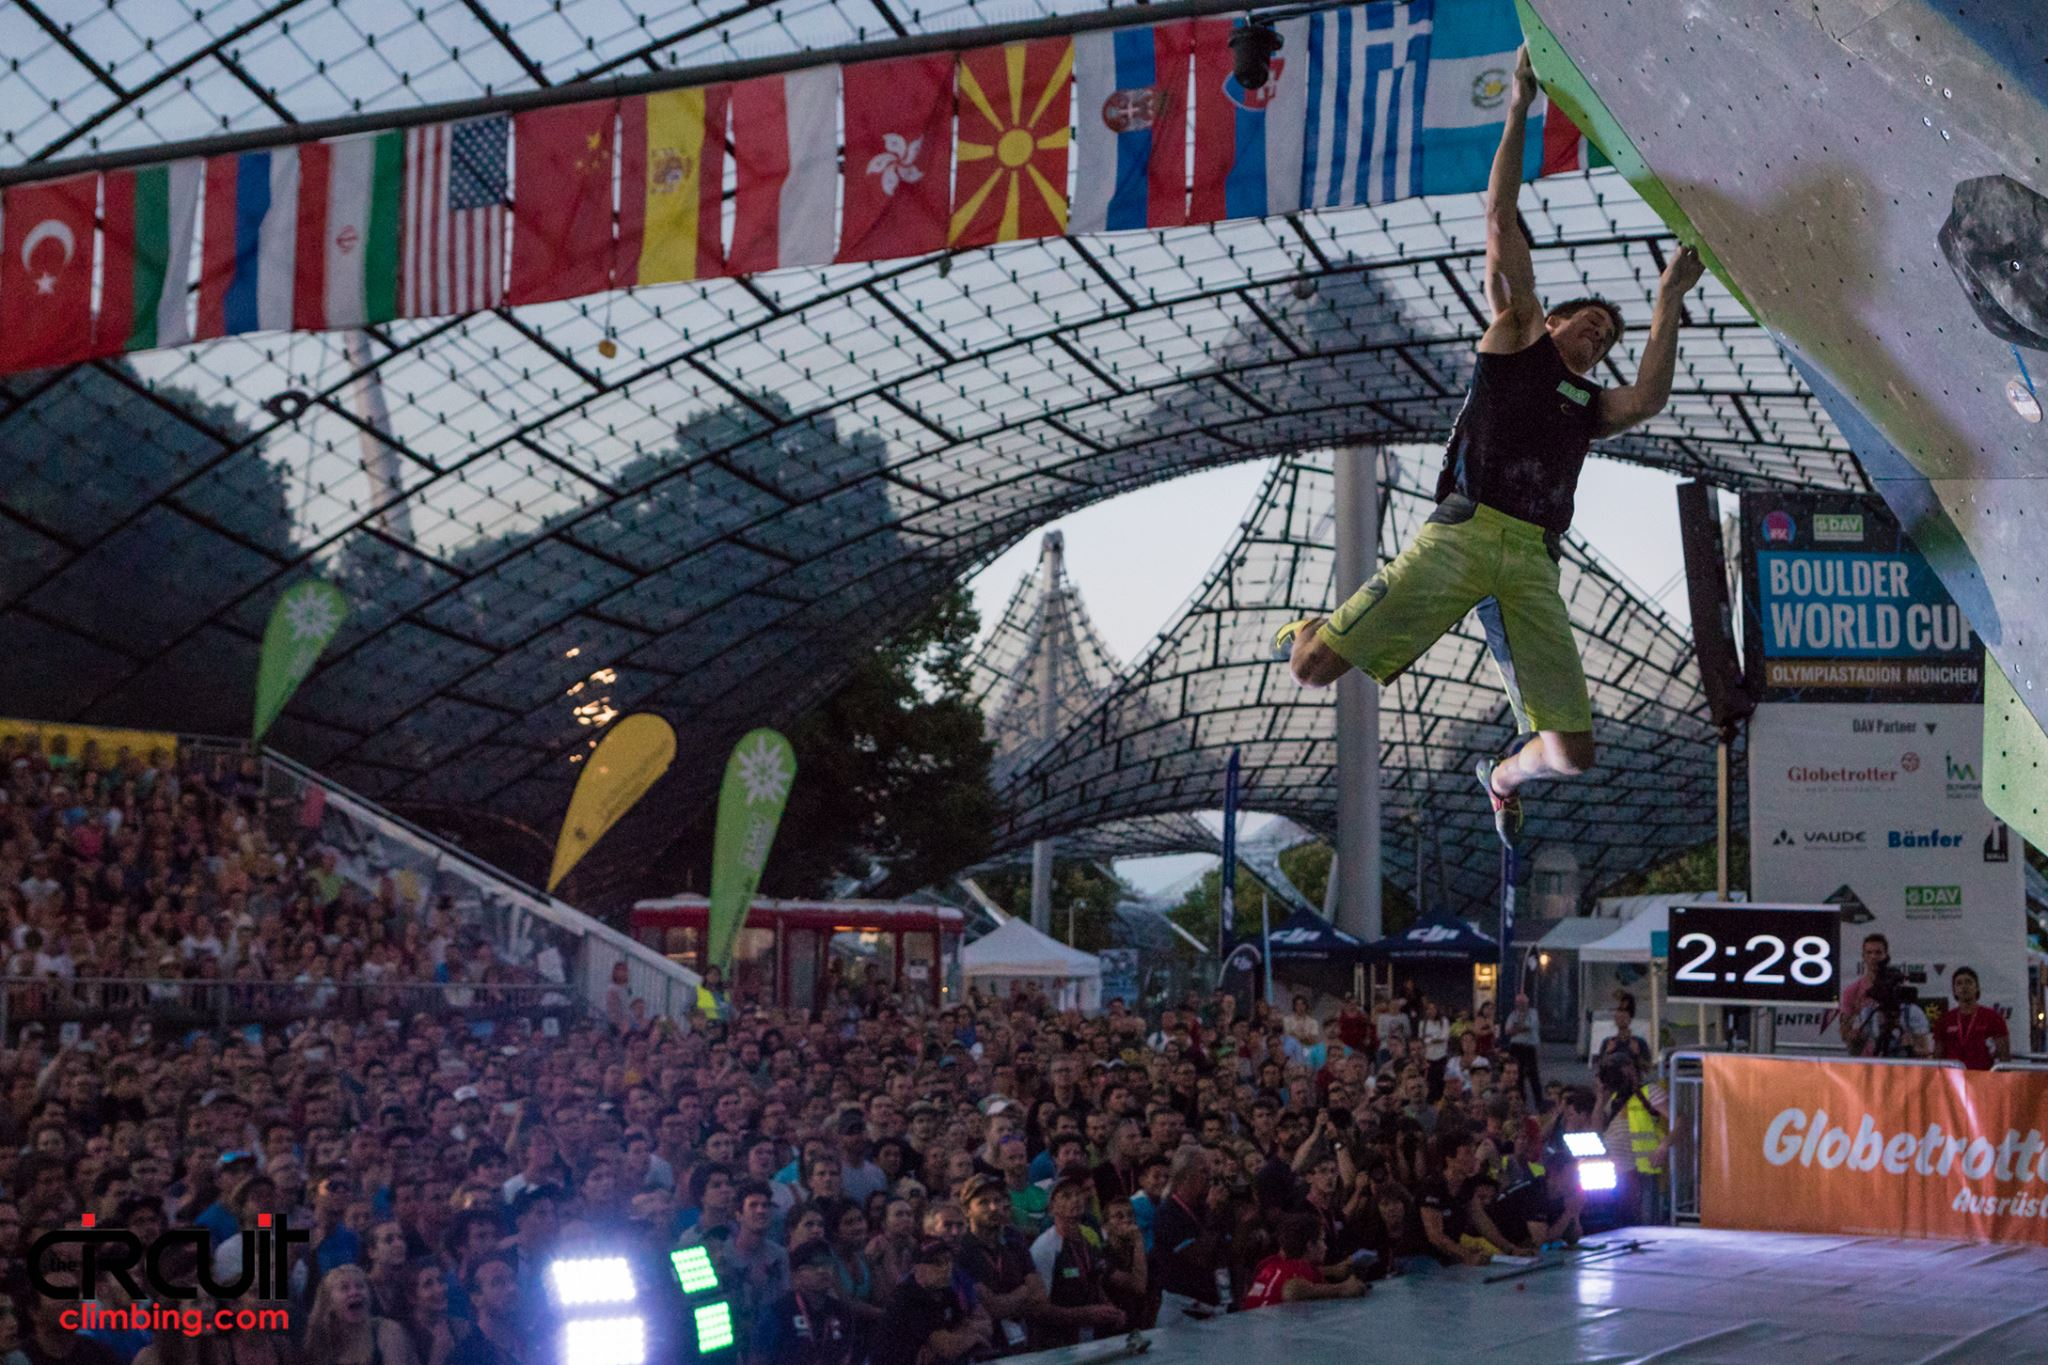 David finished 4th in the Boulder World Cup in Munich this year (c) Eddie Fowke